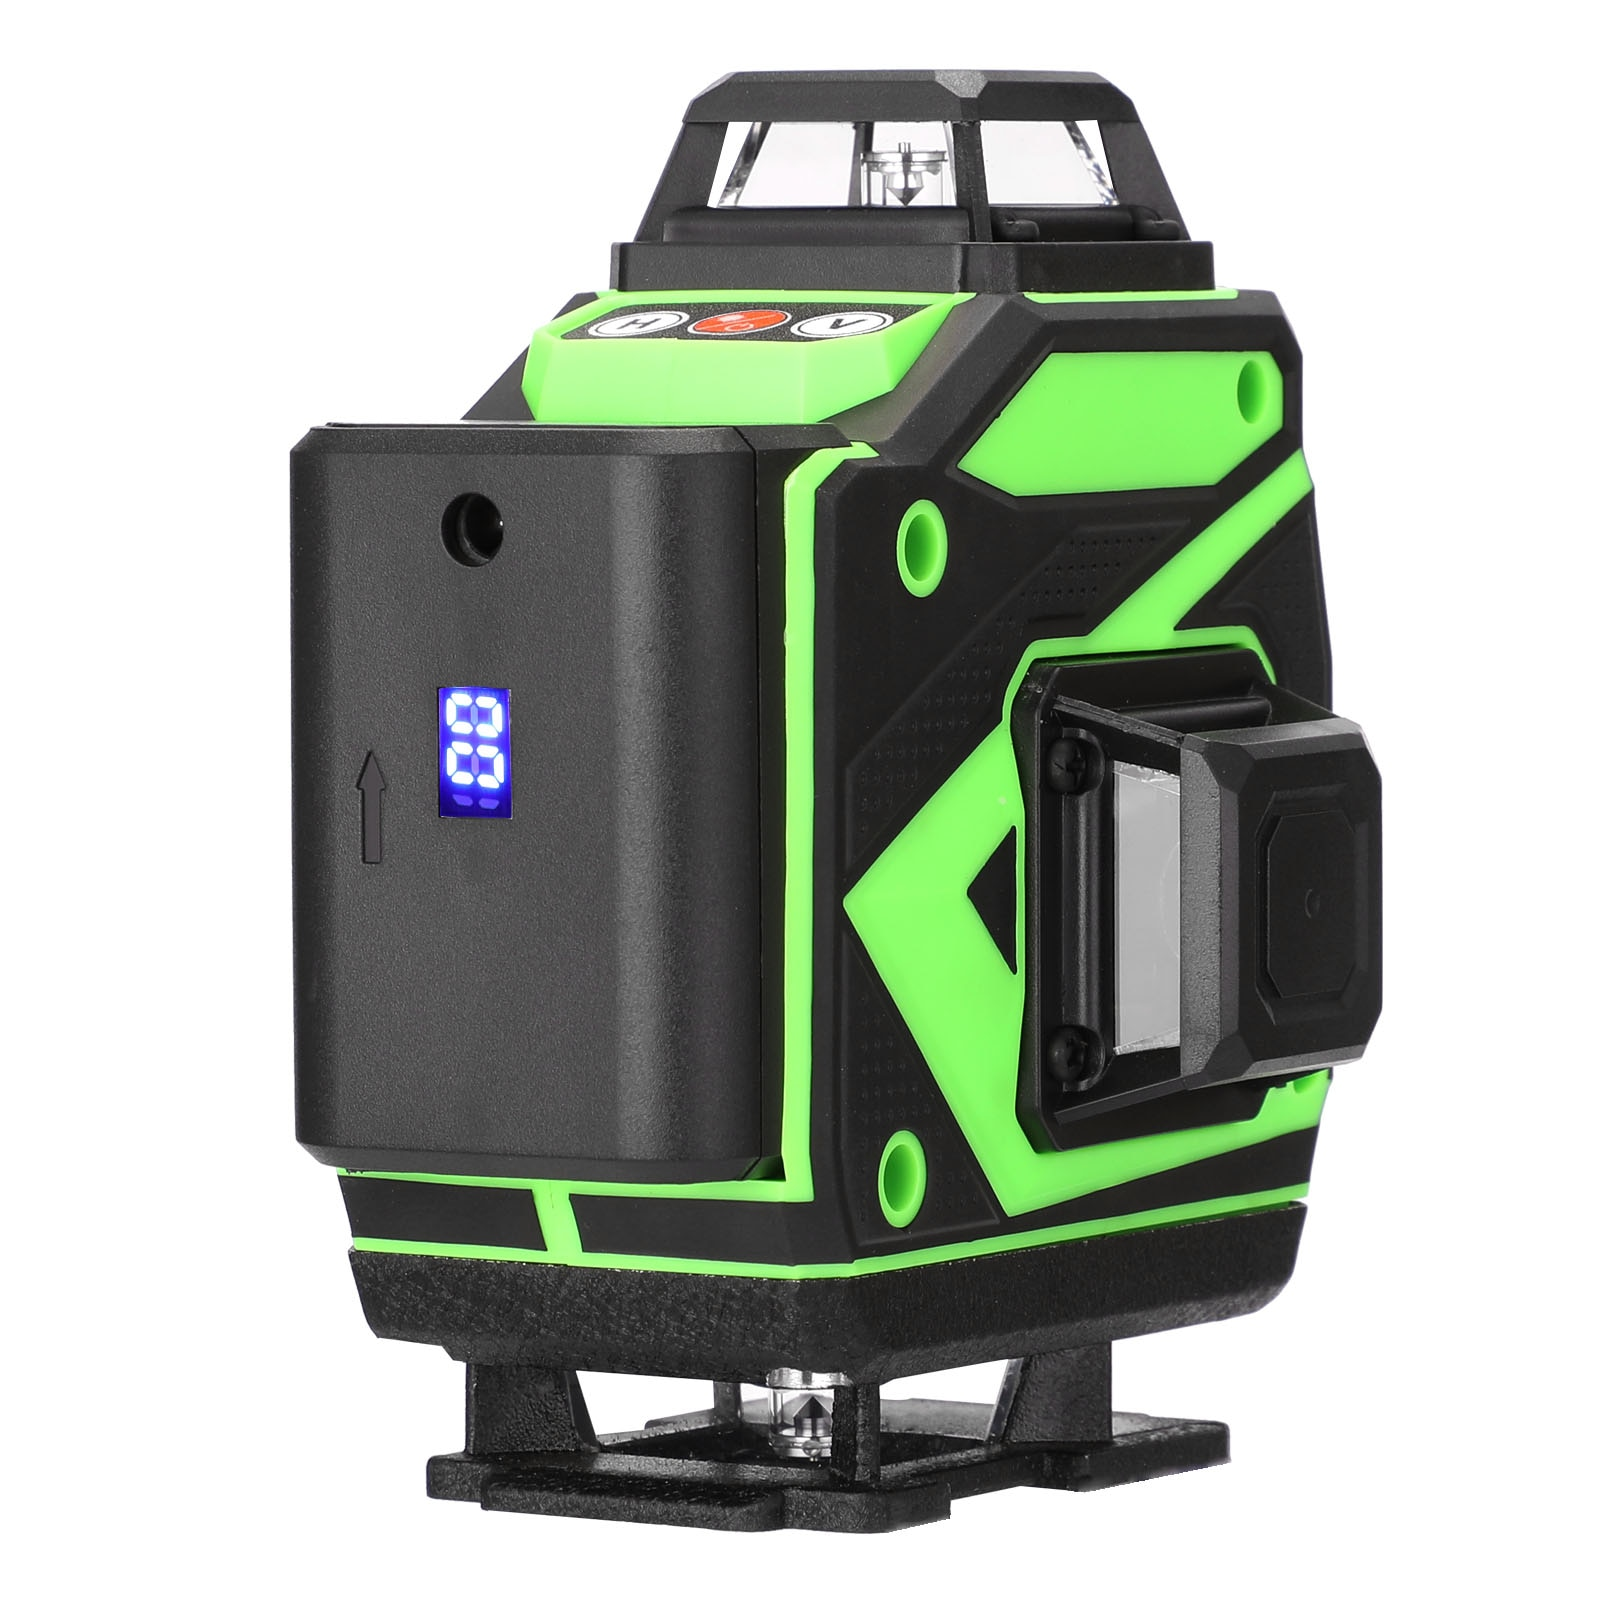 Multifunctional 16 Lines Laser Level Tool Vertical Horizontal with 3° Self-leveling Function